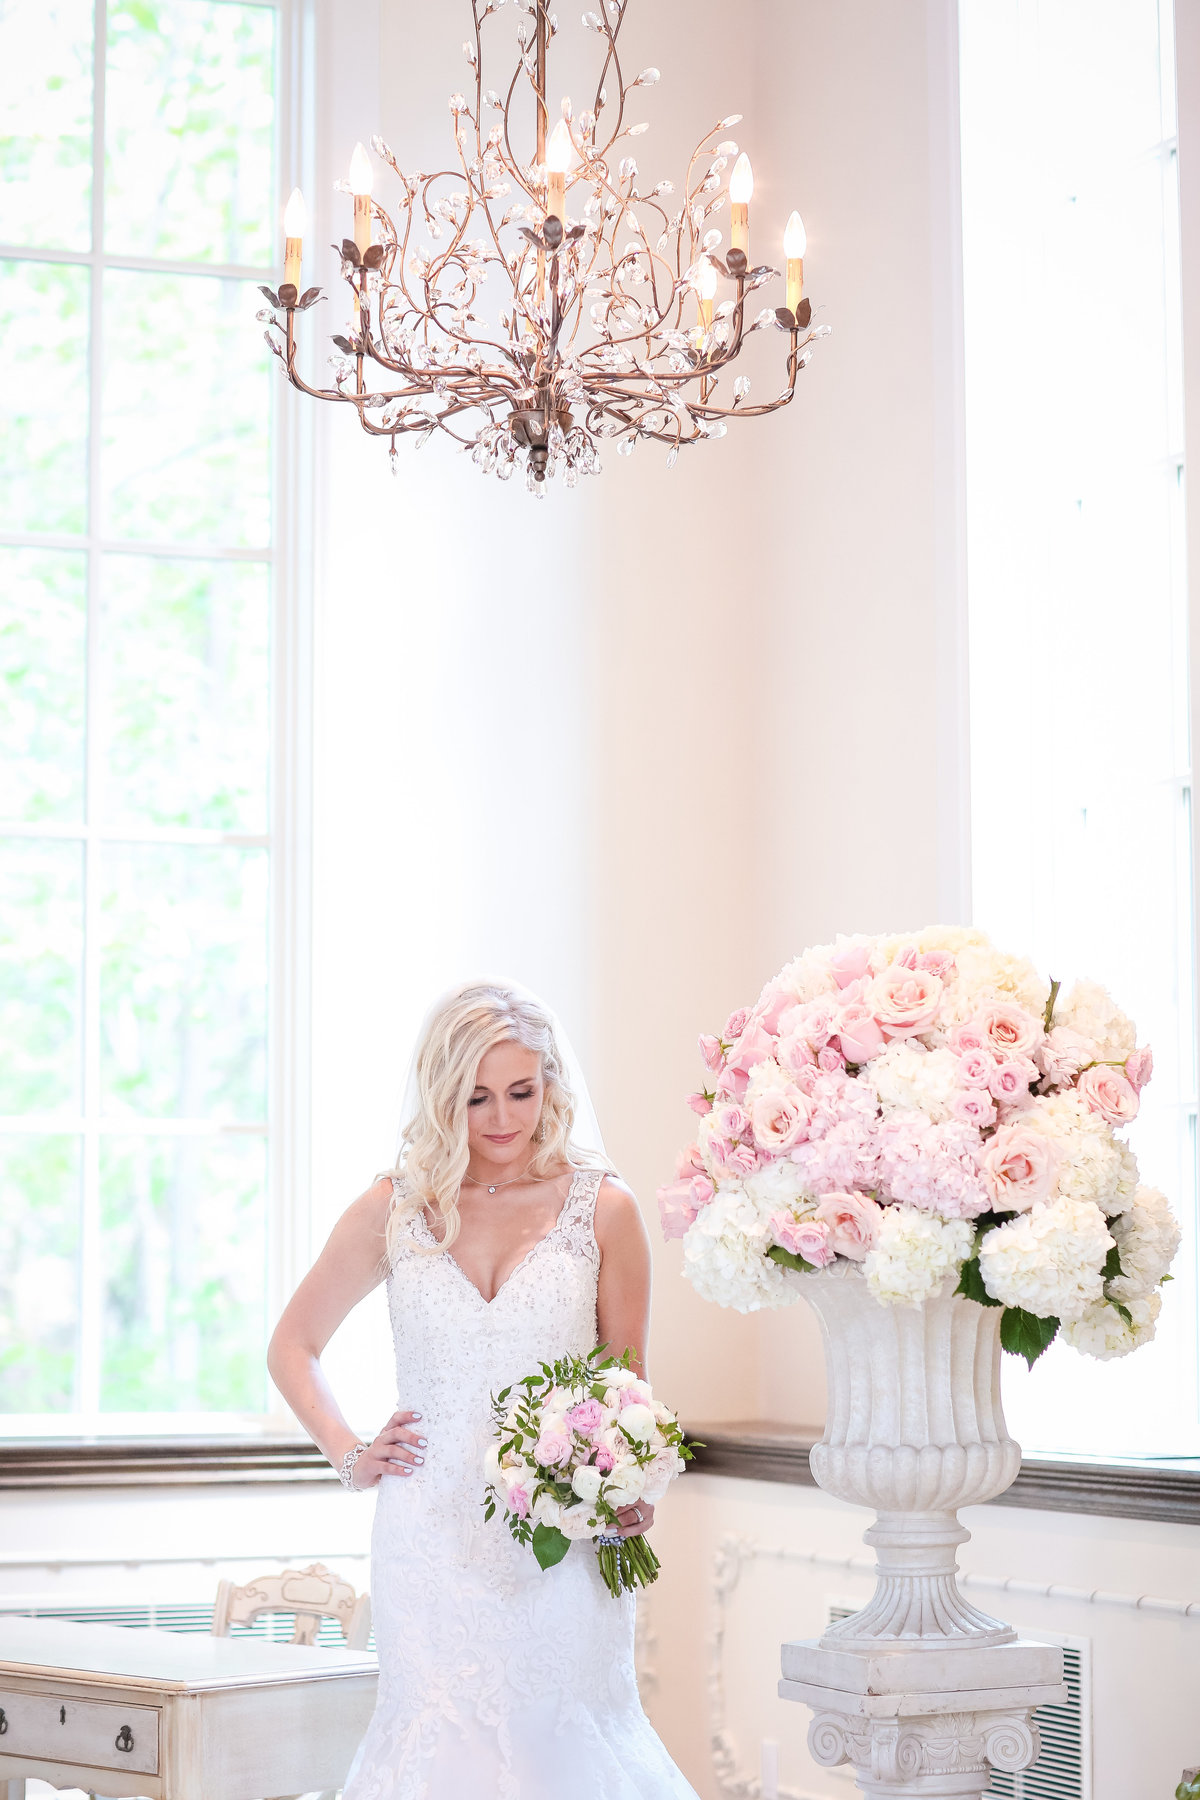 Ancaster Mill Wedding - Millers chapel bride with flowers and chandelier